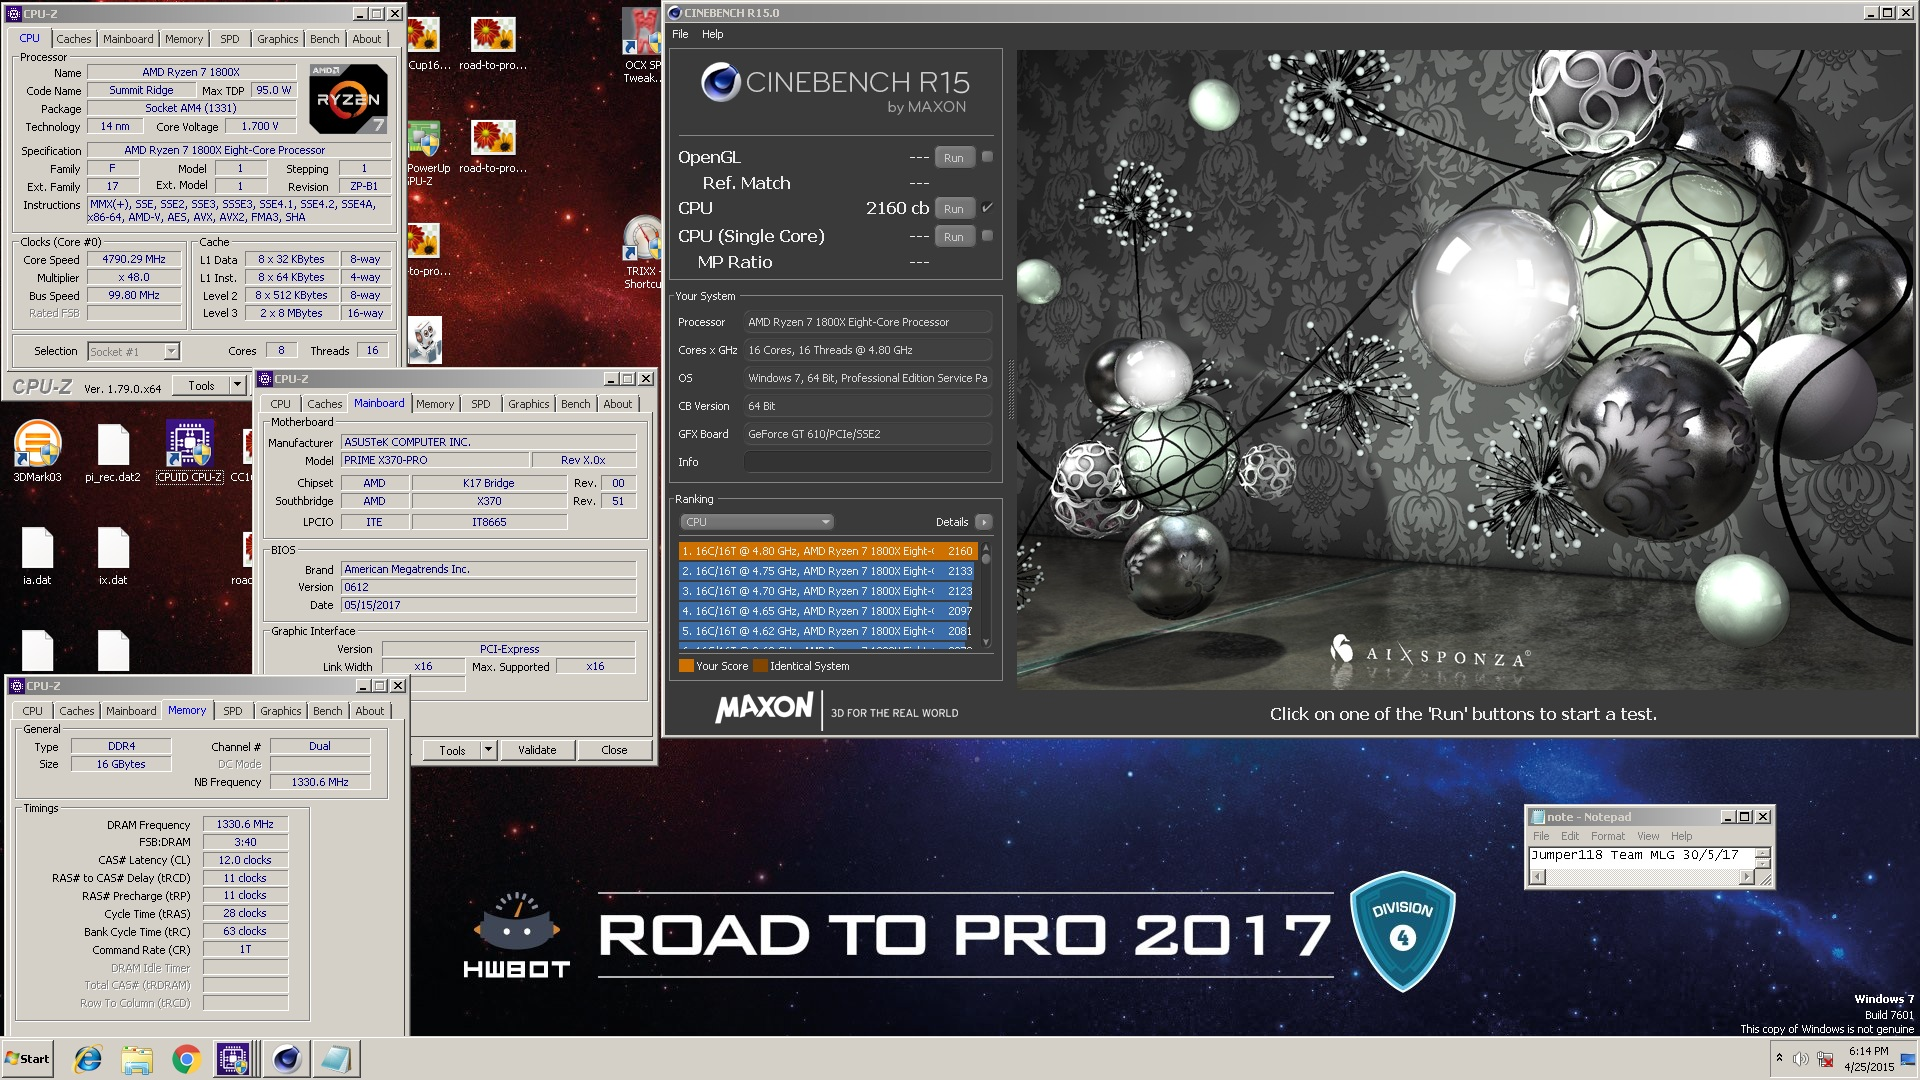 Post your cinebench r15r1152003 scores over 1000 submissions imageid1850328eg sciox Choice Image